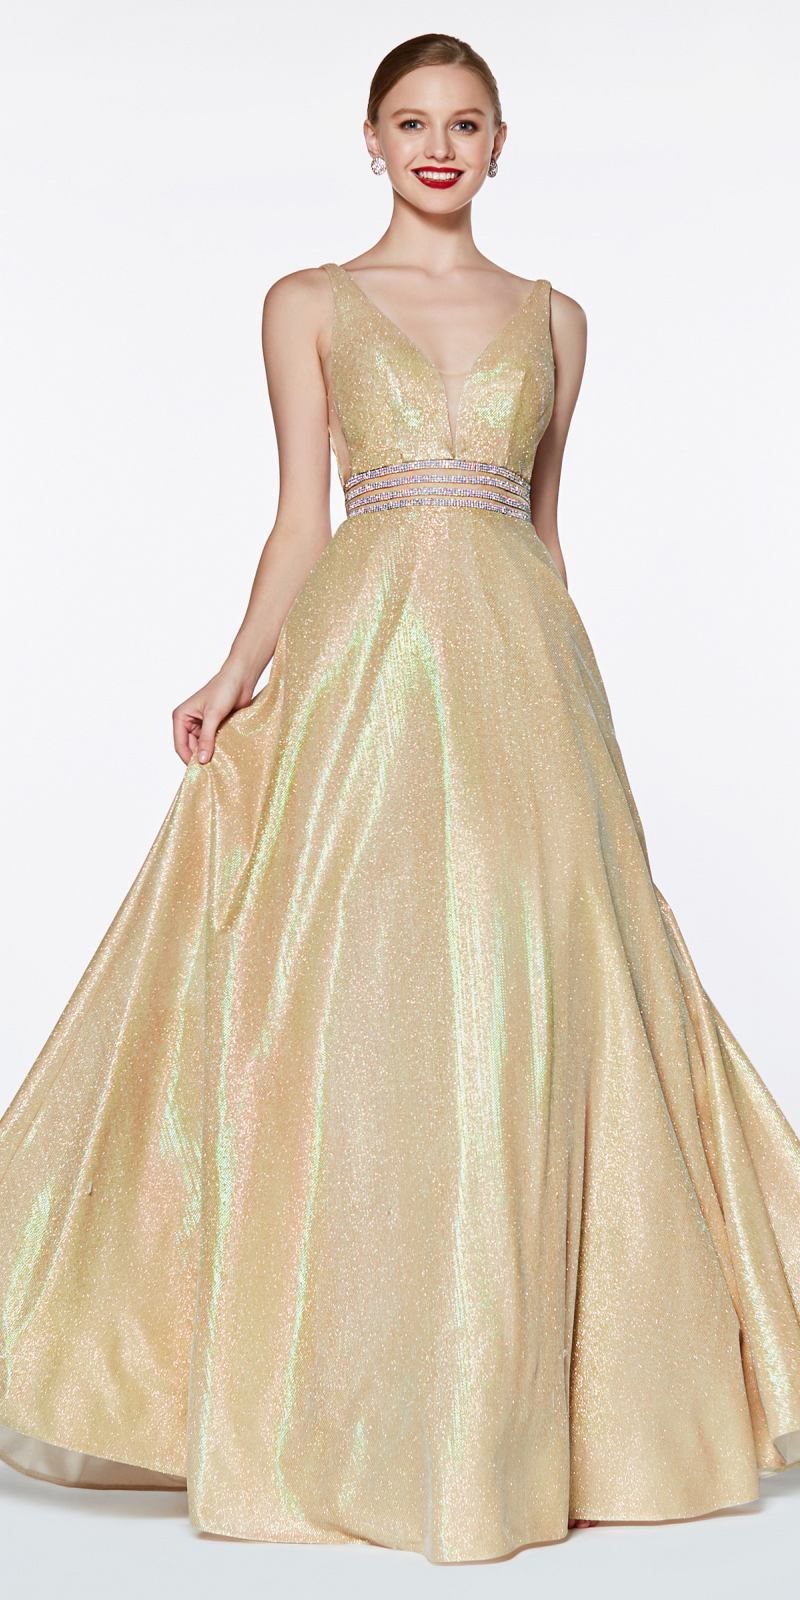 Cinderella Divine KC872 Evening Dress Prom Dress Off the shoulder metallic gown